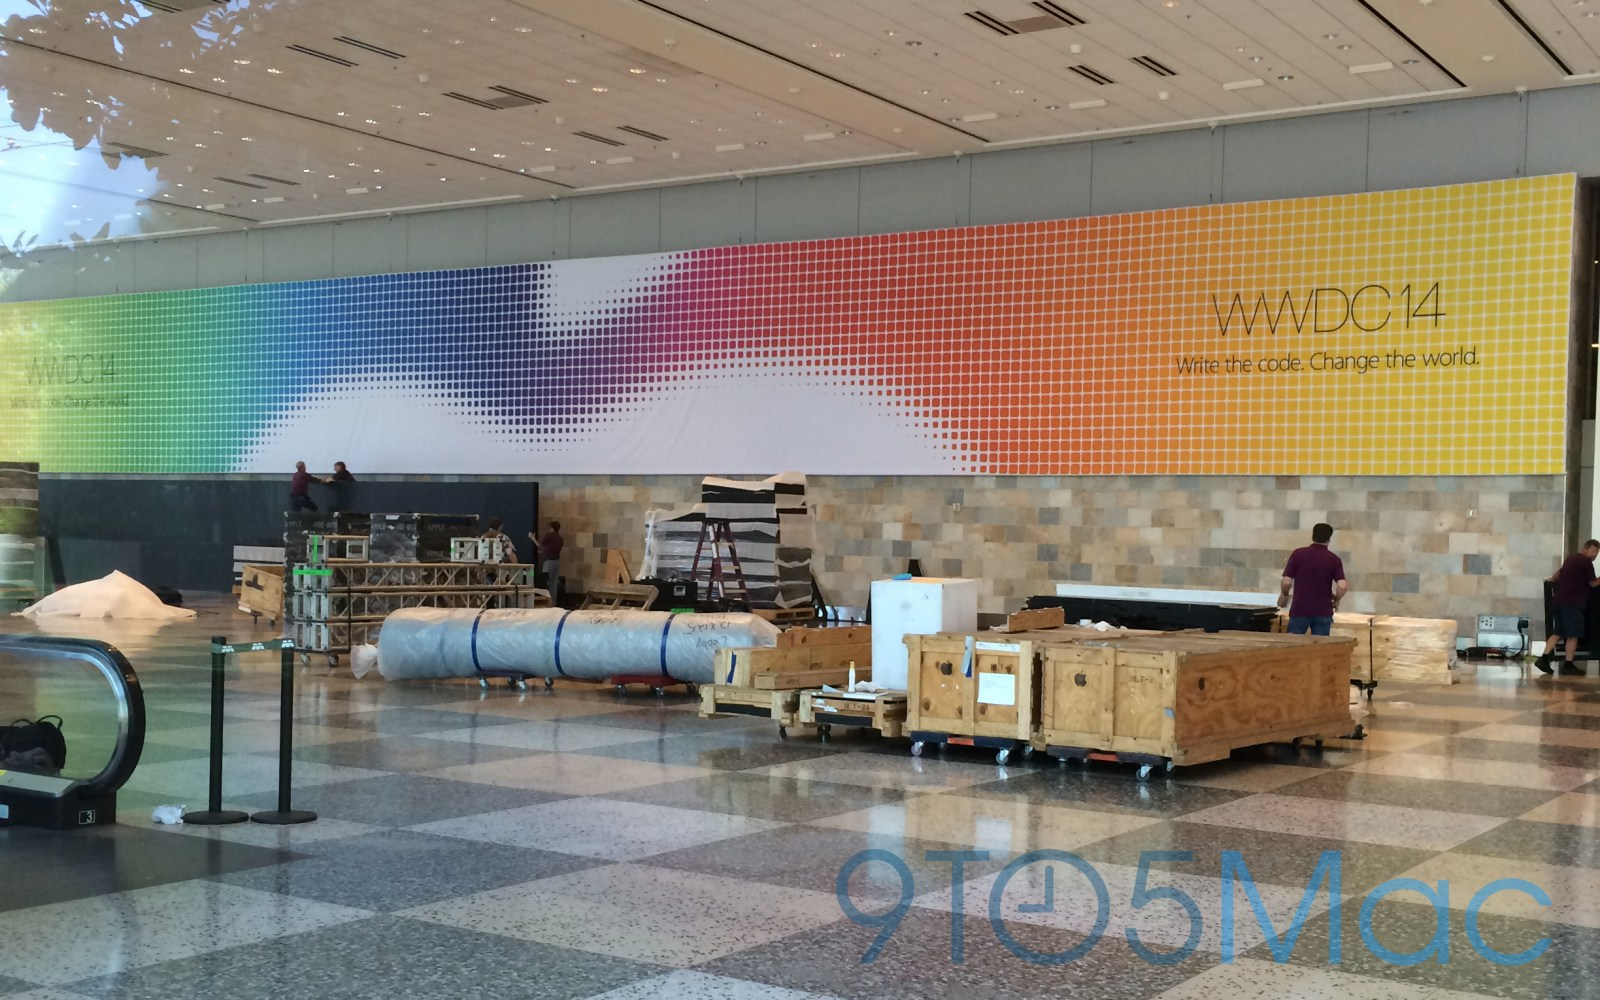 Apple displaying colorful banners at Moscone West ahead of WWDC 2014